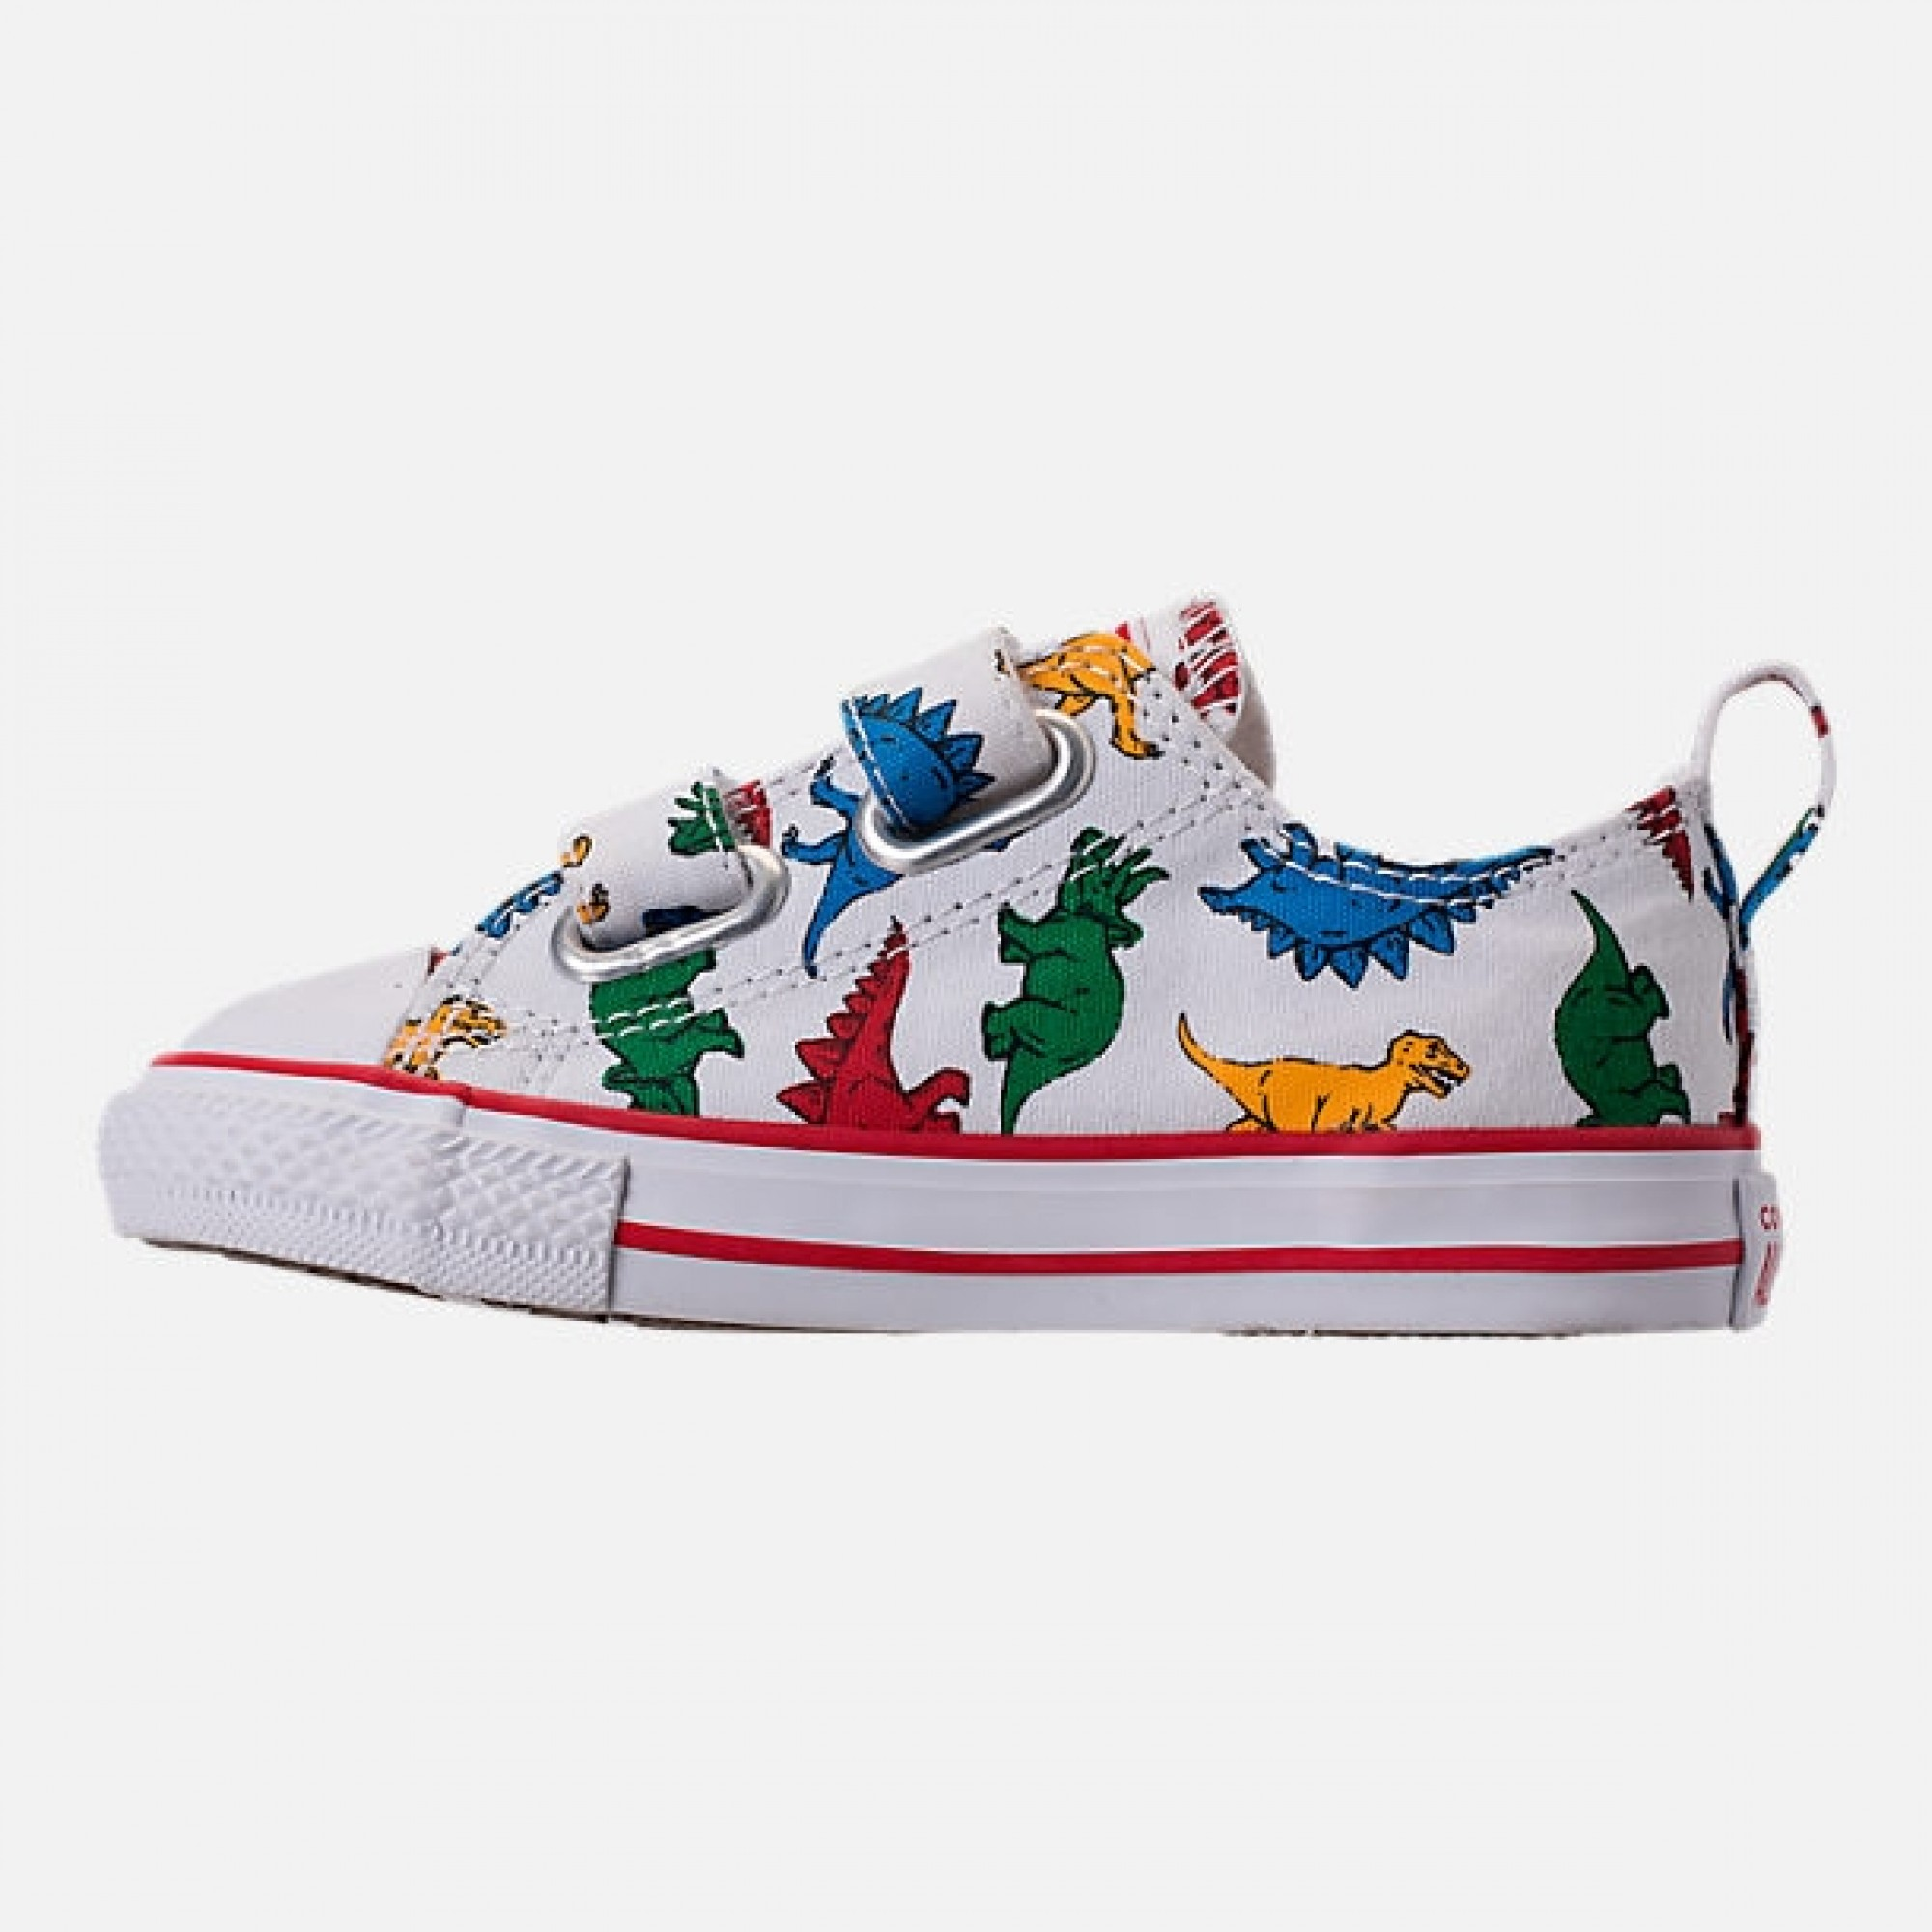 Venue Store CONVERSE Chuck Taylor All Star Dinoverse 2v Infant Shoe - White  Enamel Red Totally Blue Free Delivery Over  100 d4c688f504